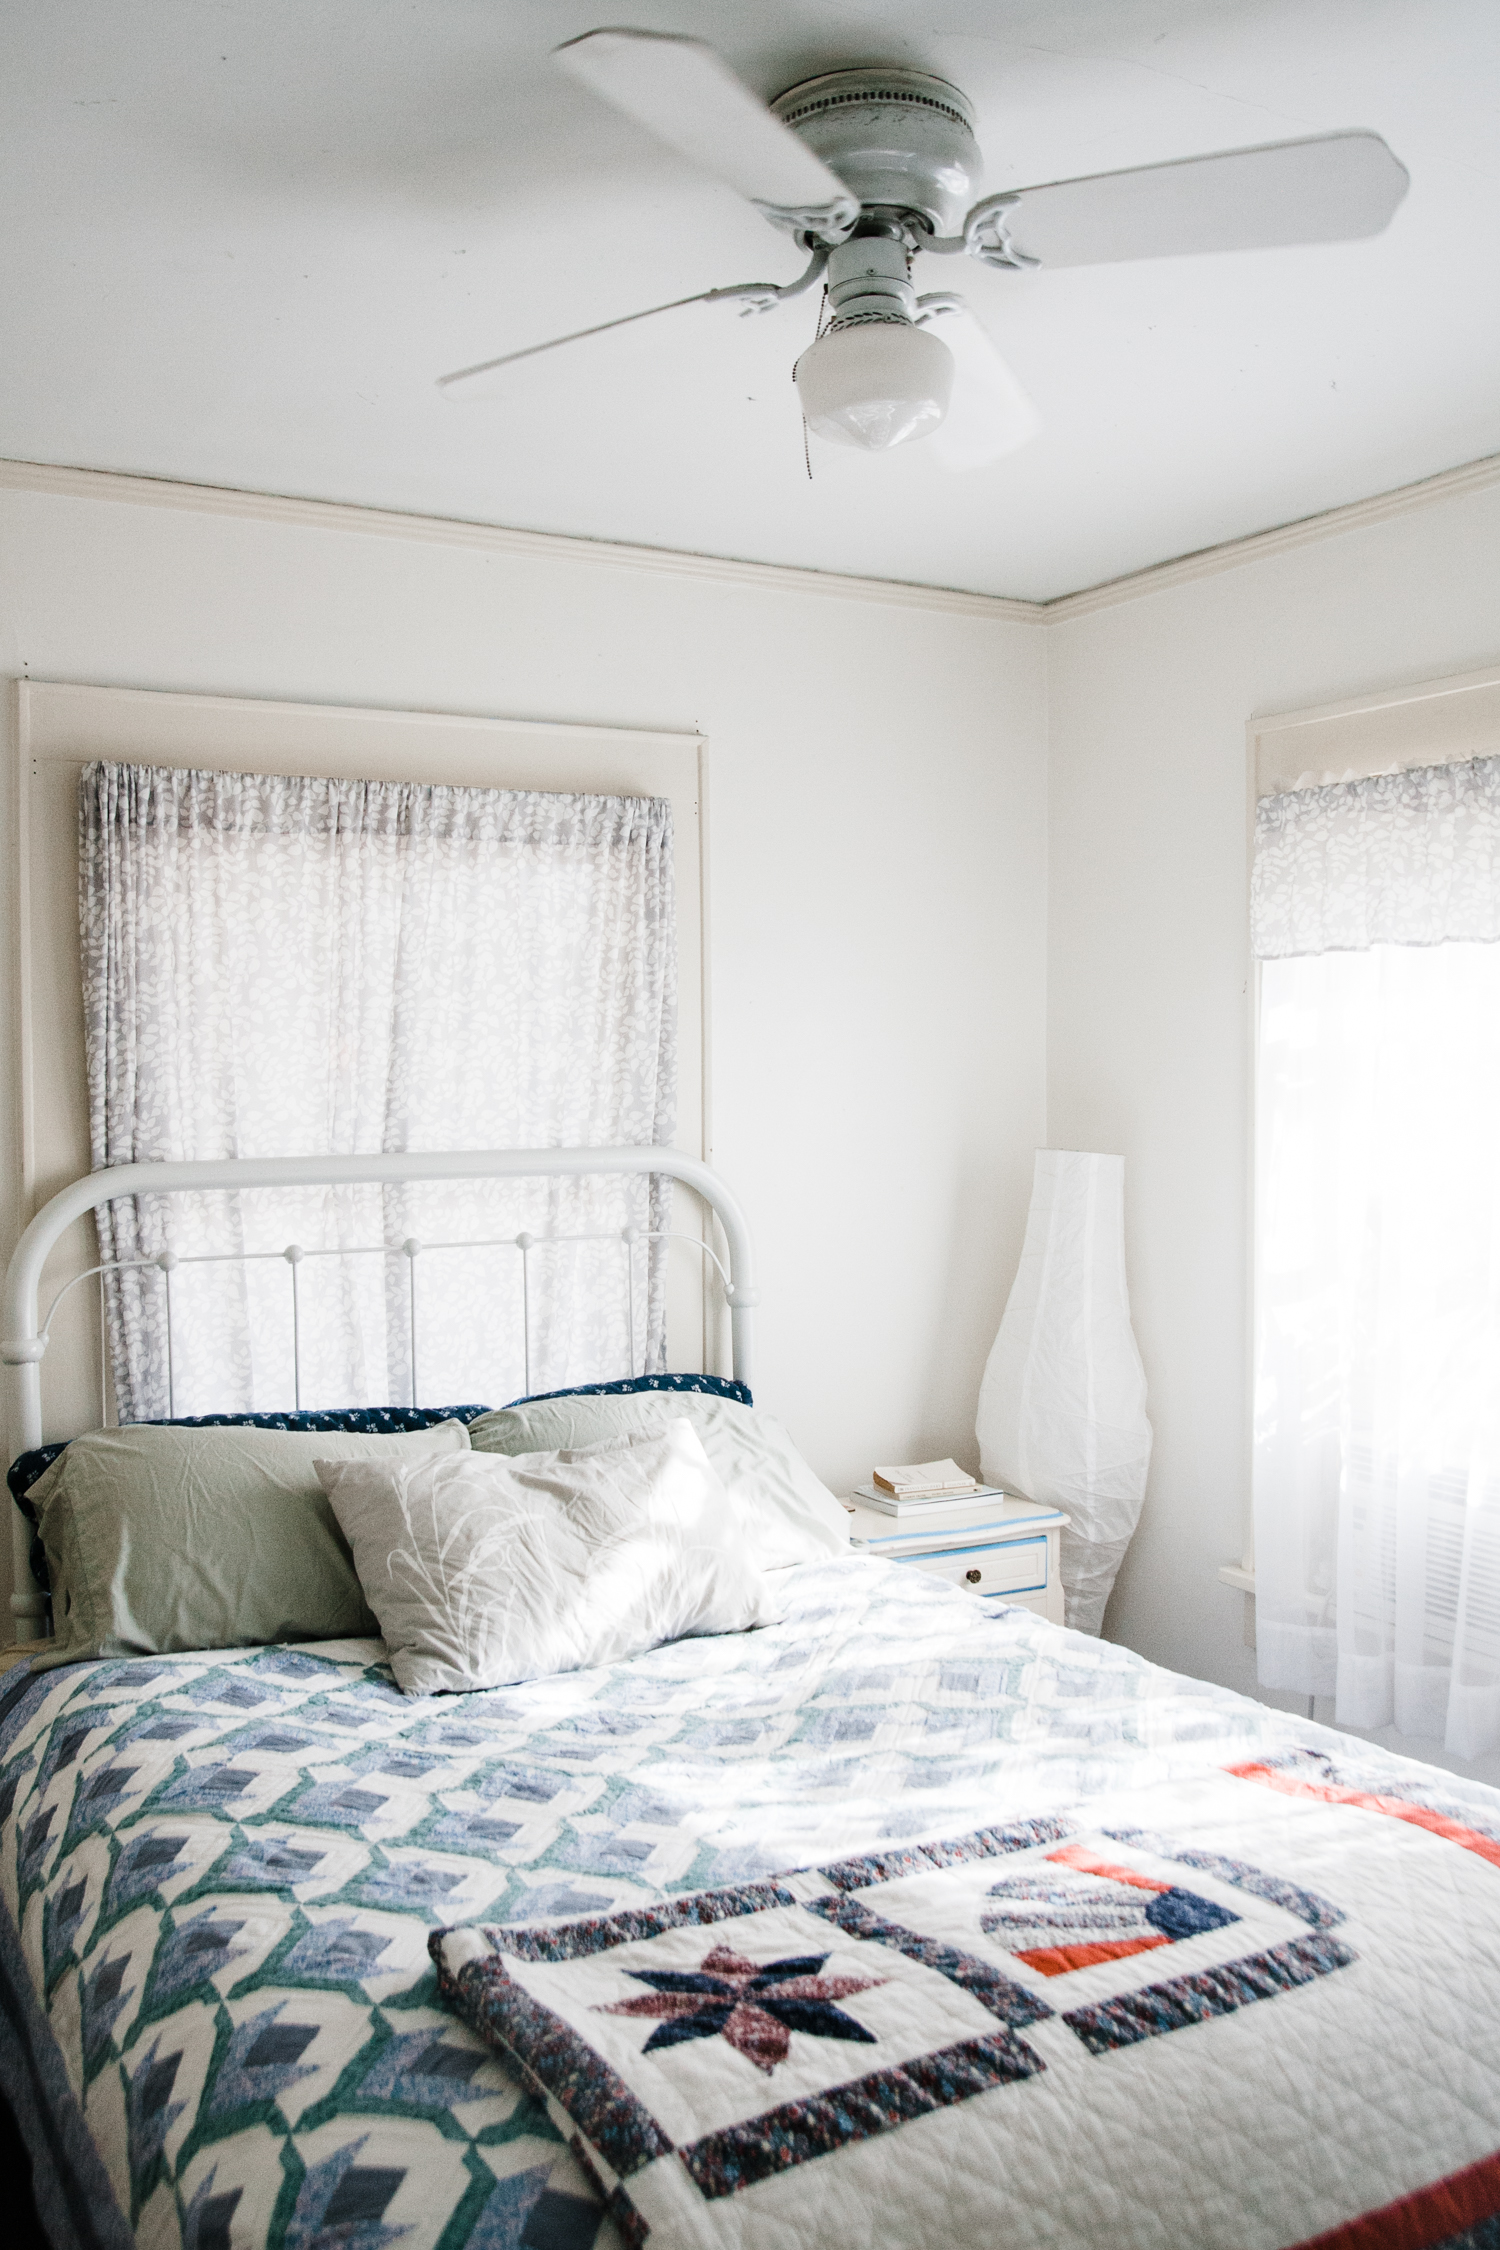 Emily's bedroom is small, but beautiful, adorned with vintage quilts.